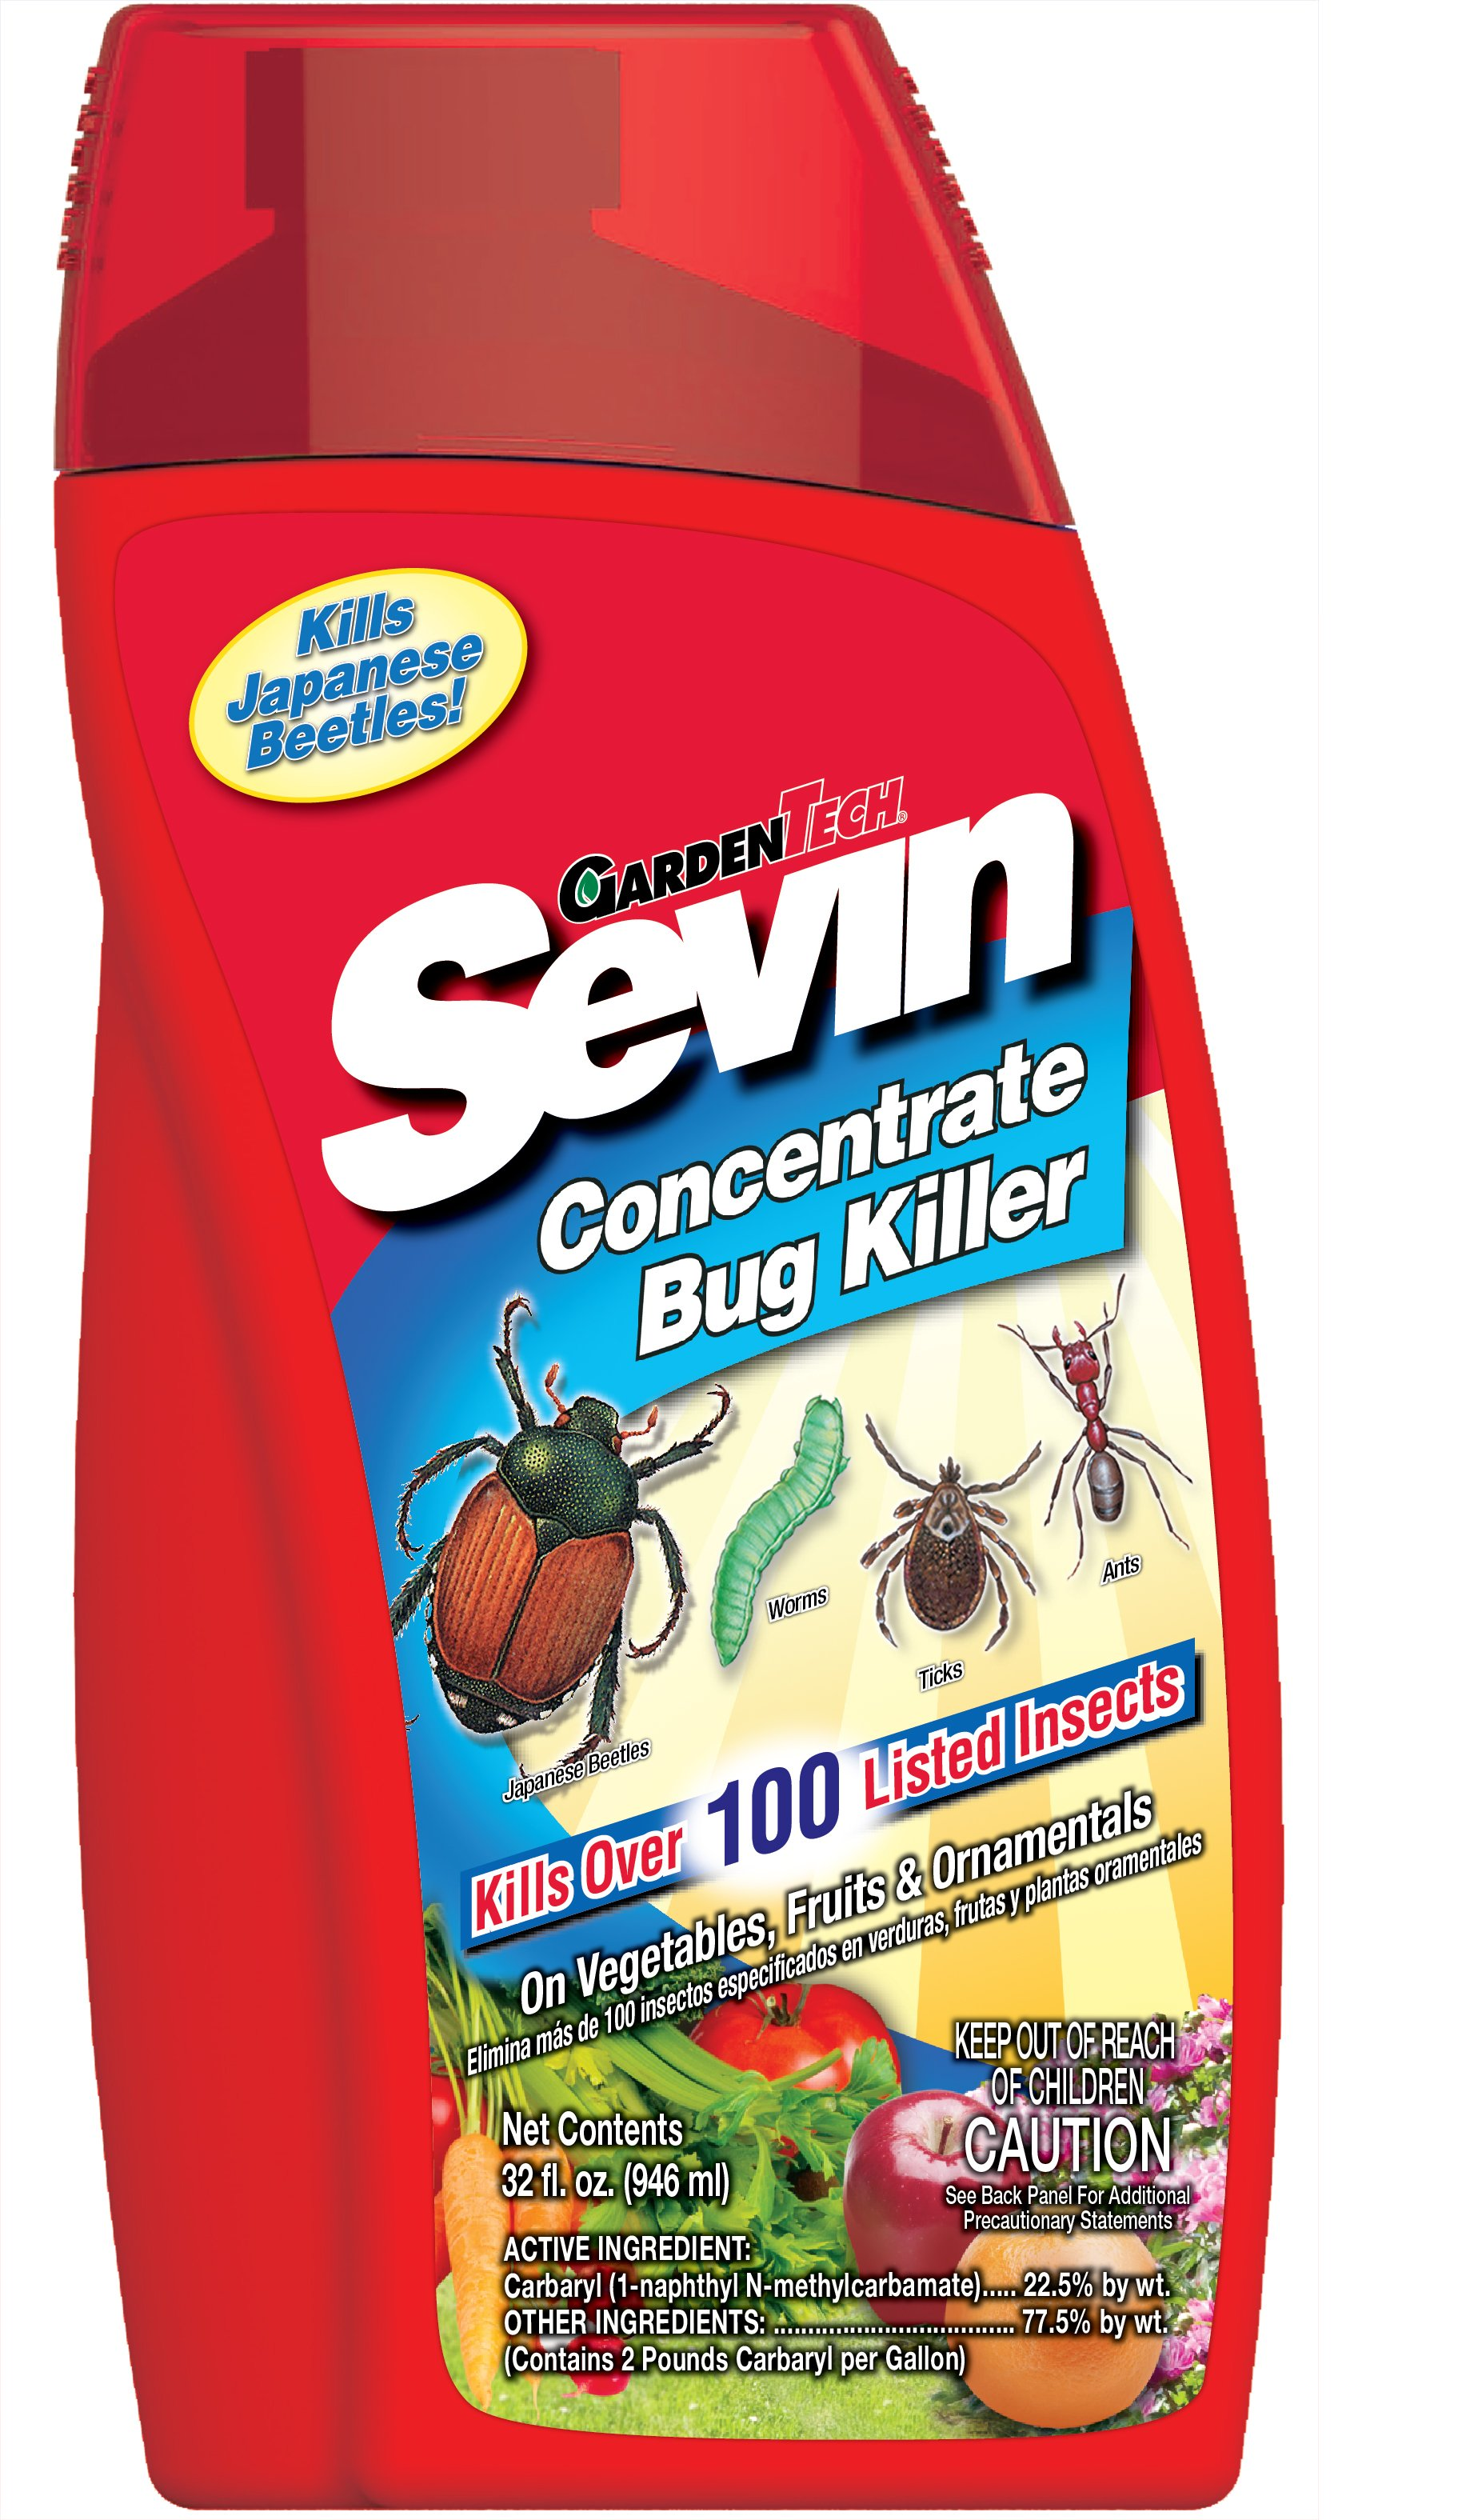 How do you view the usage information for Sevin liquid insecticide?